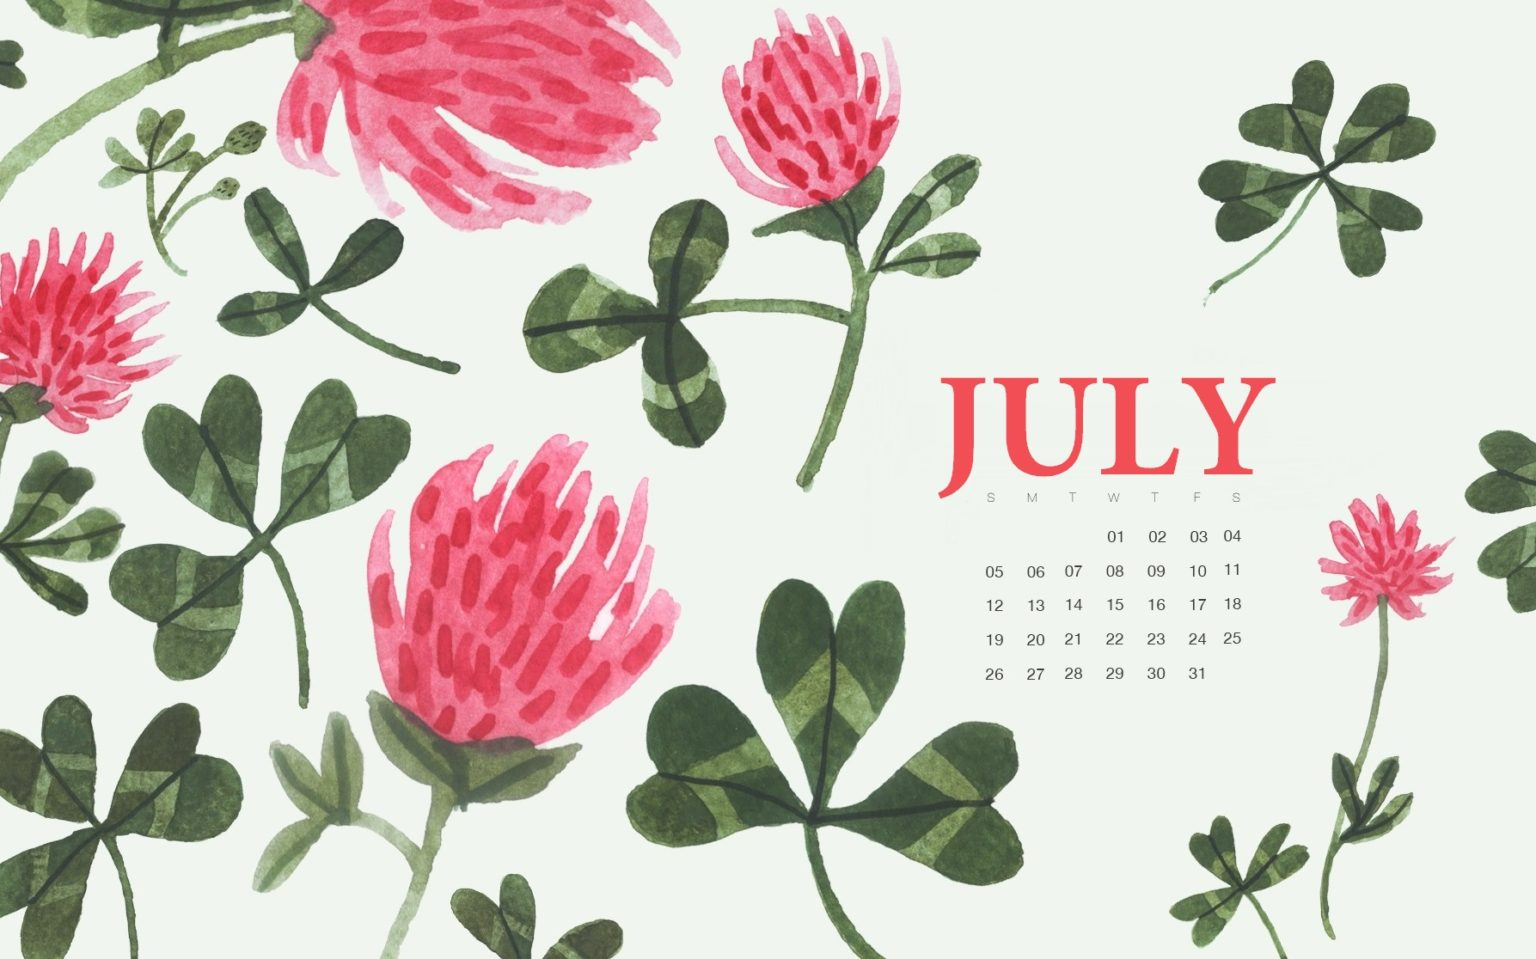 Watercolor July 2020 Desktop Wallpaper